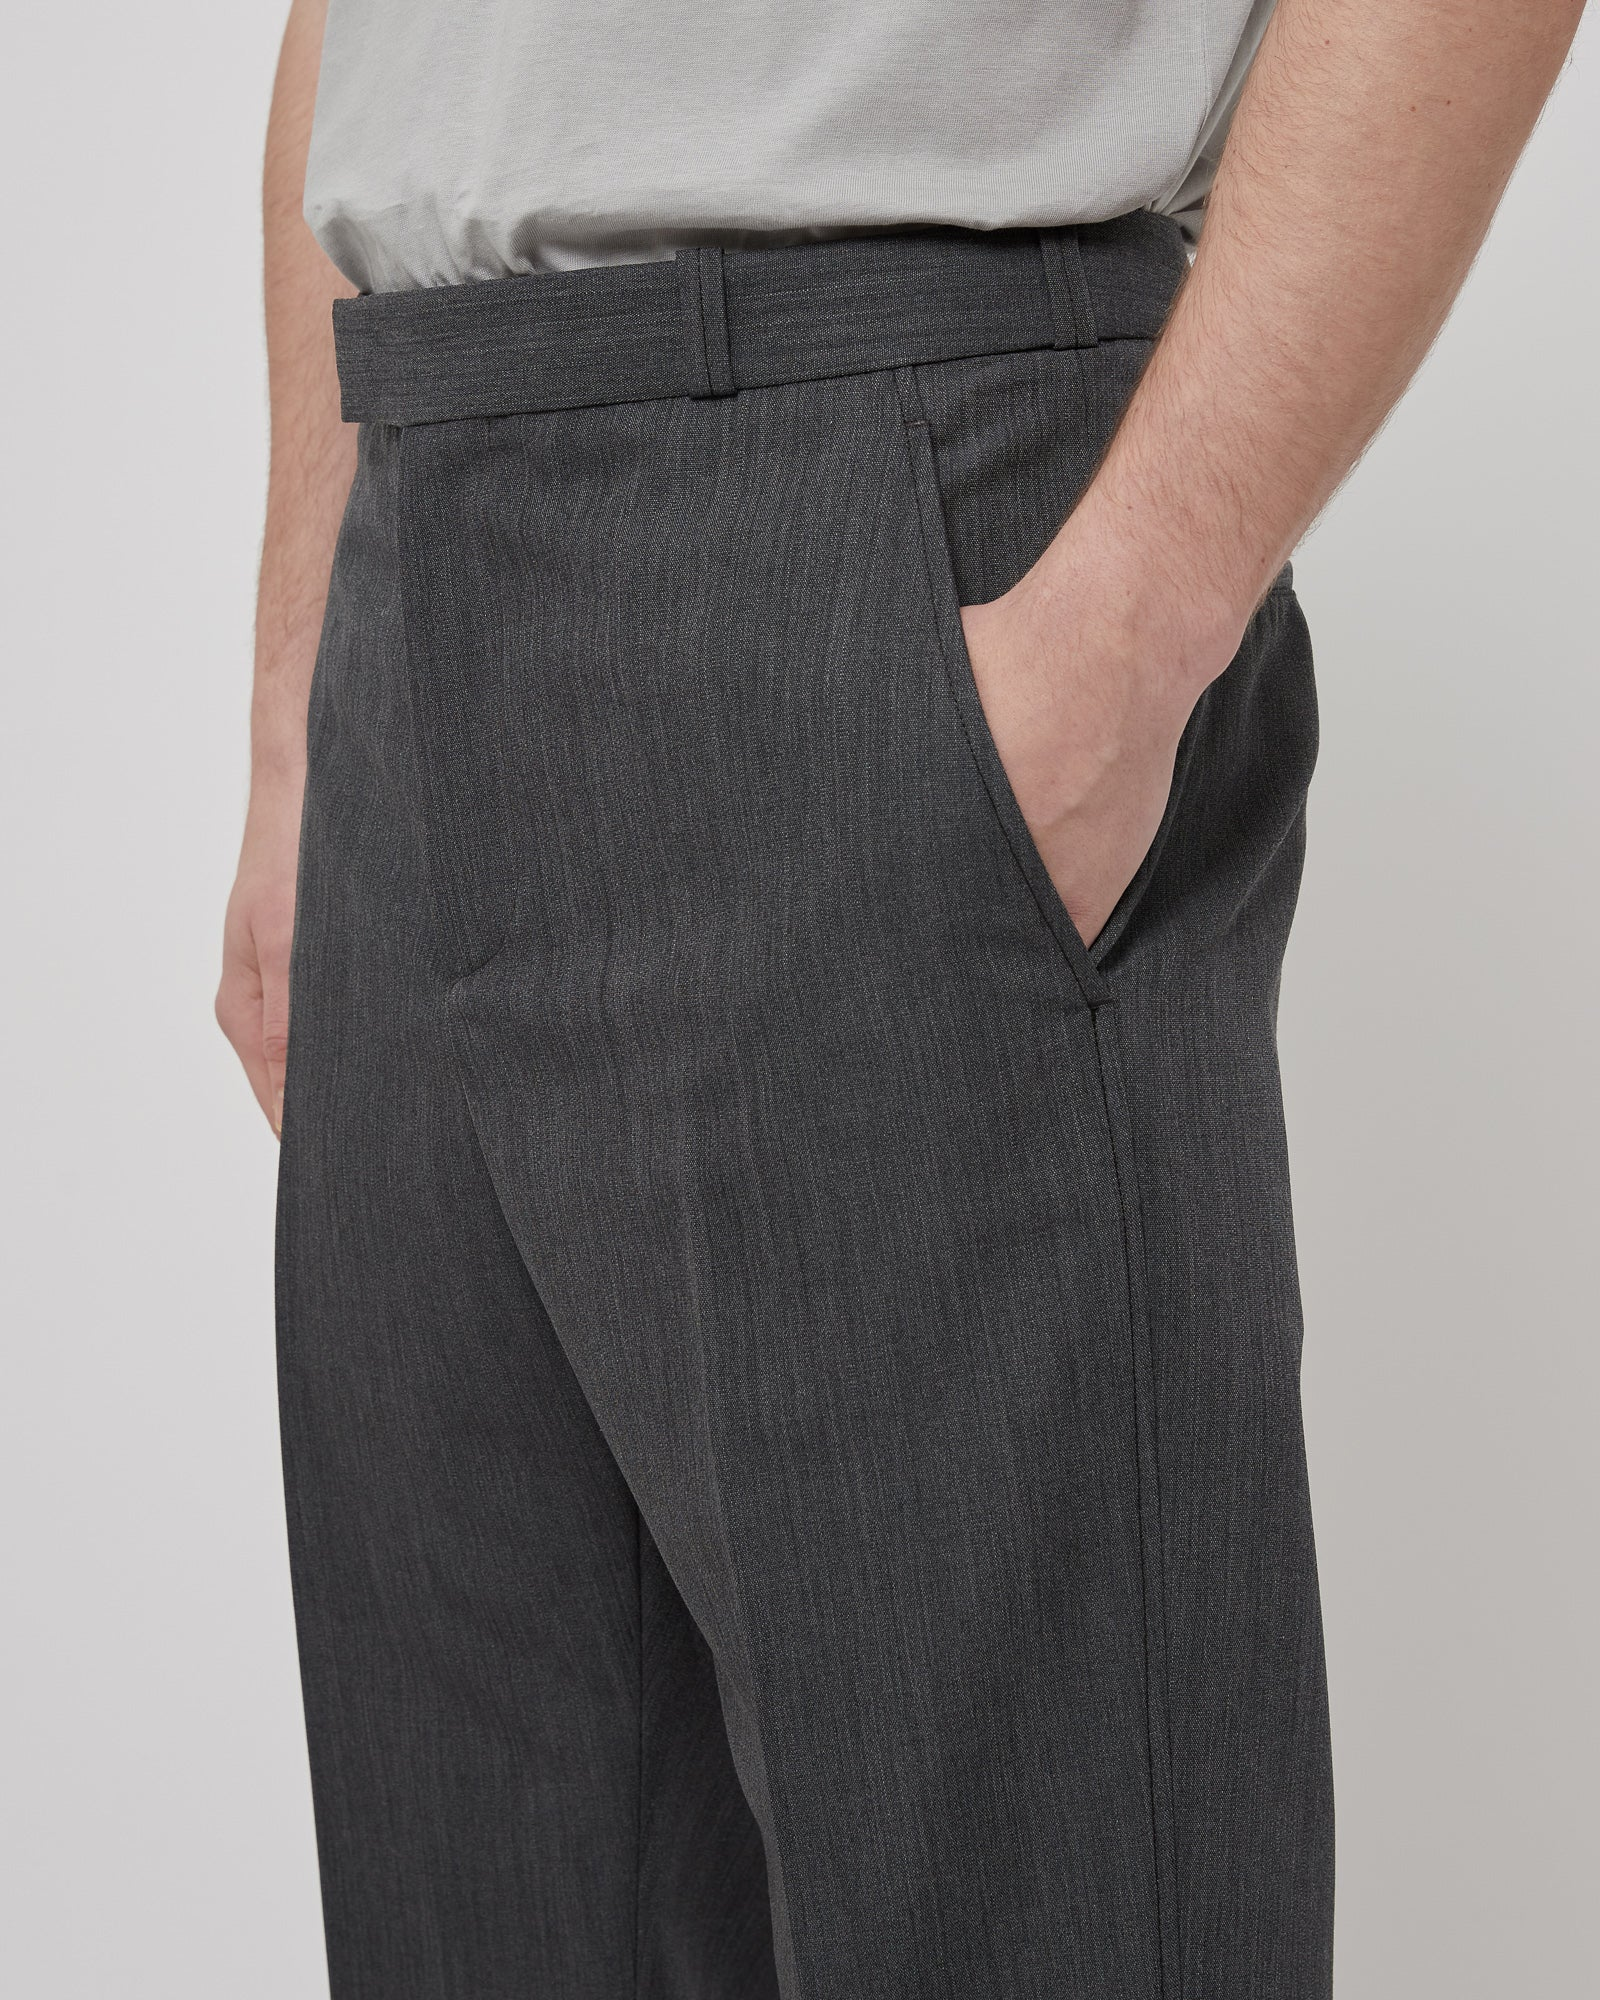 Idol Pant in Dark Gray